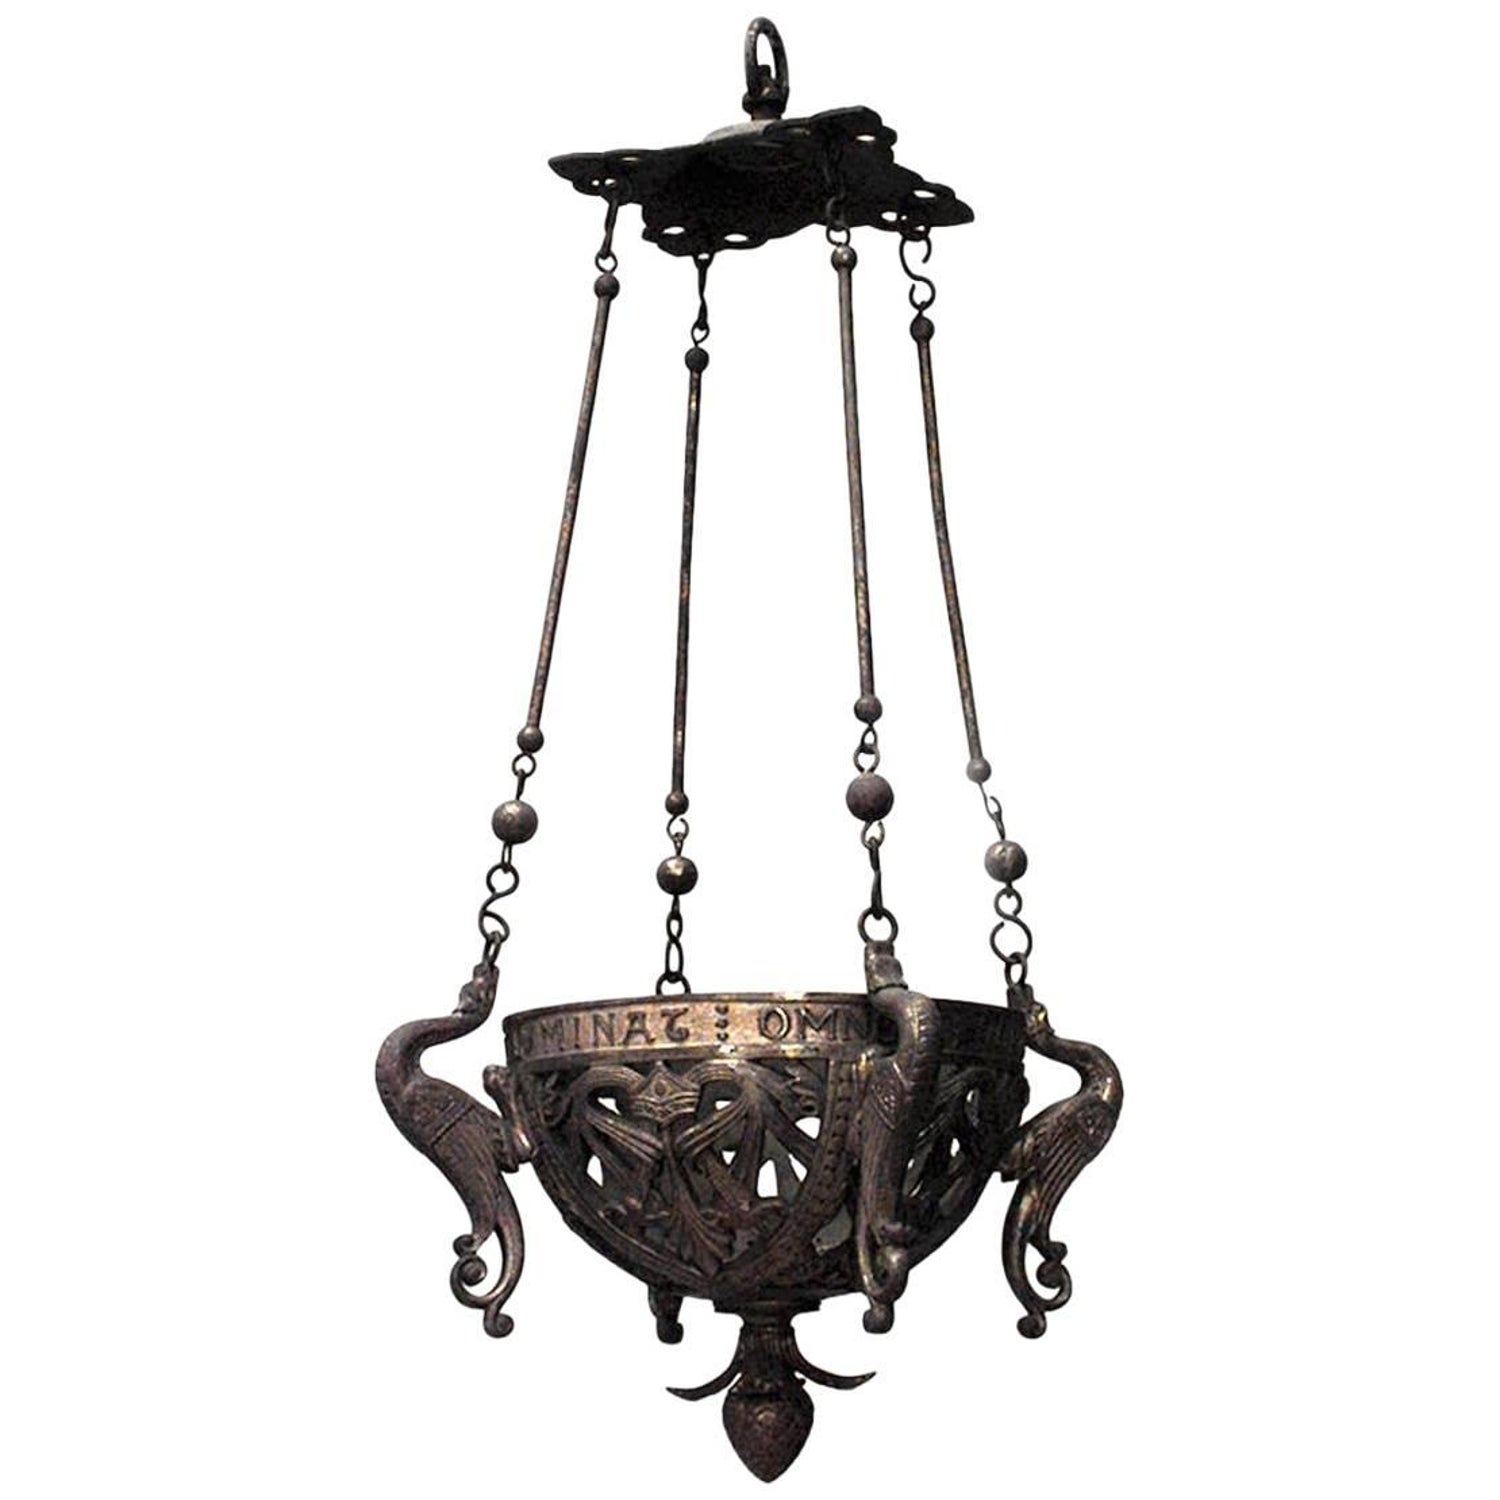 Similar English Gothic Revival Style, 19Th Century Six Sided Sanctuary Fixtures